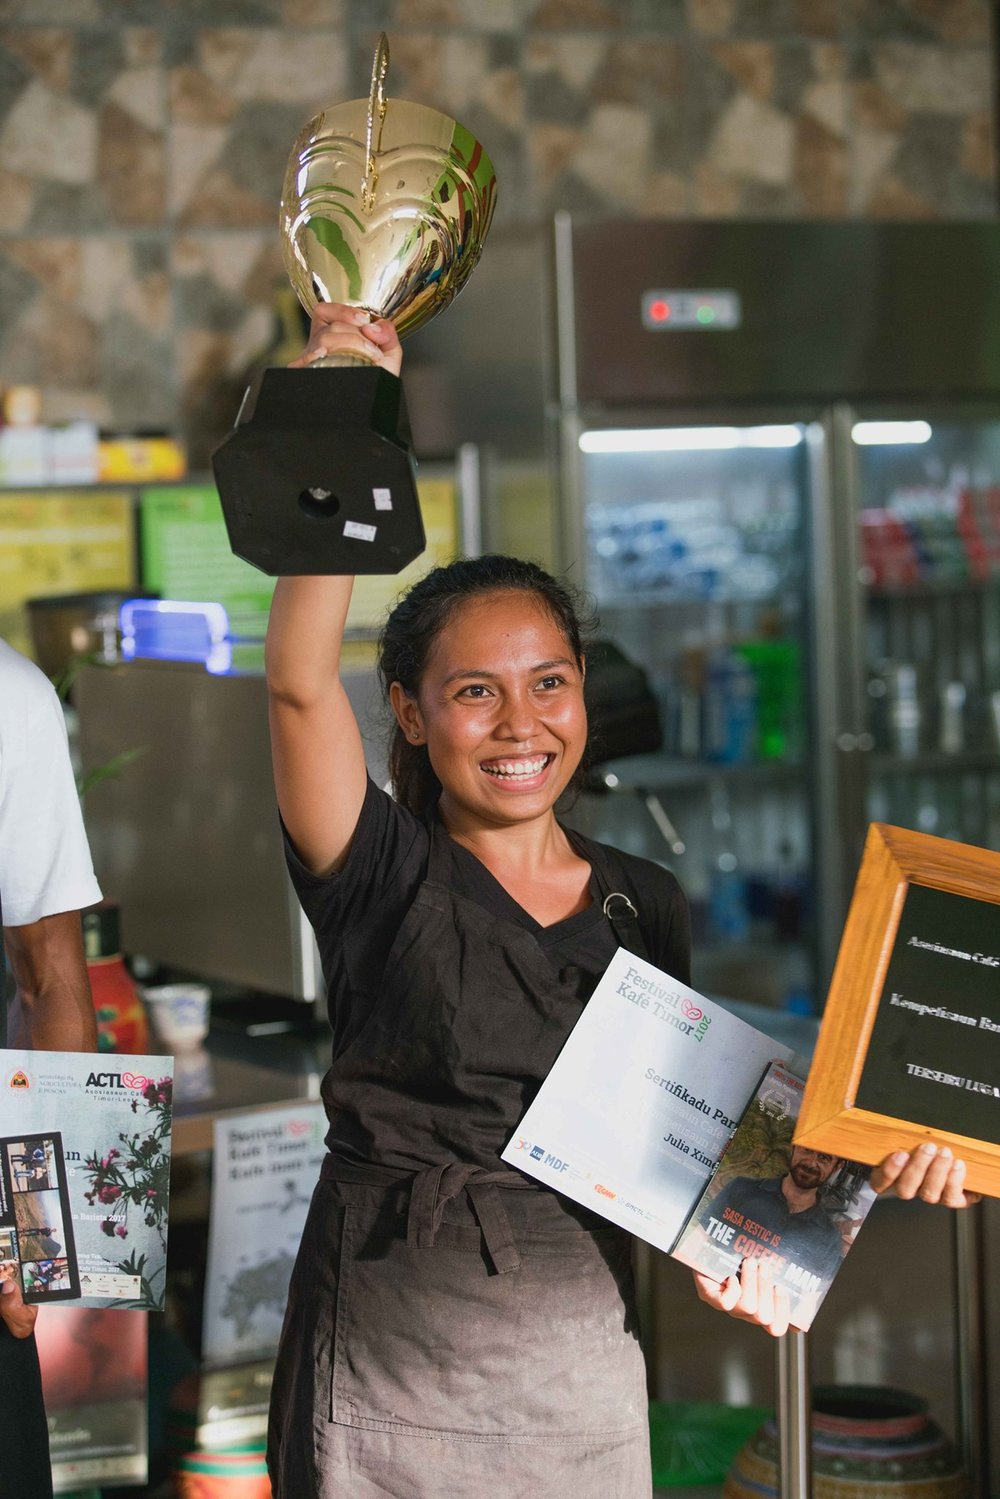 First Barista Champion ofTimor-Leste  - Julia Ximenes won Timor-Leste's firstBarista Competition at the 2017 Festival Kafé Timor. She joined our team in October 2016, and within a year became, not only the nation's best barista, but also one of its first emerging coffee cupping judge. Julia's favourite methodis cold-brew coffee.  She is also pursuing her undergraduatedegree in finance at the National University of Timor-Leste.